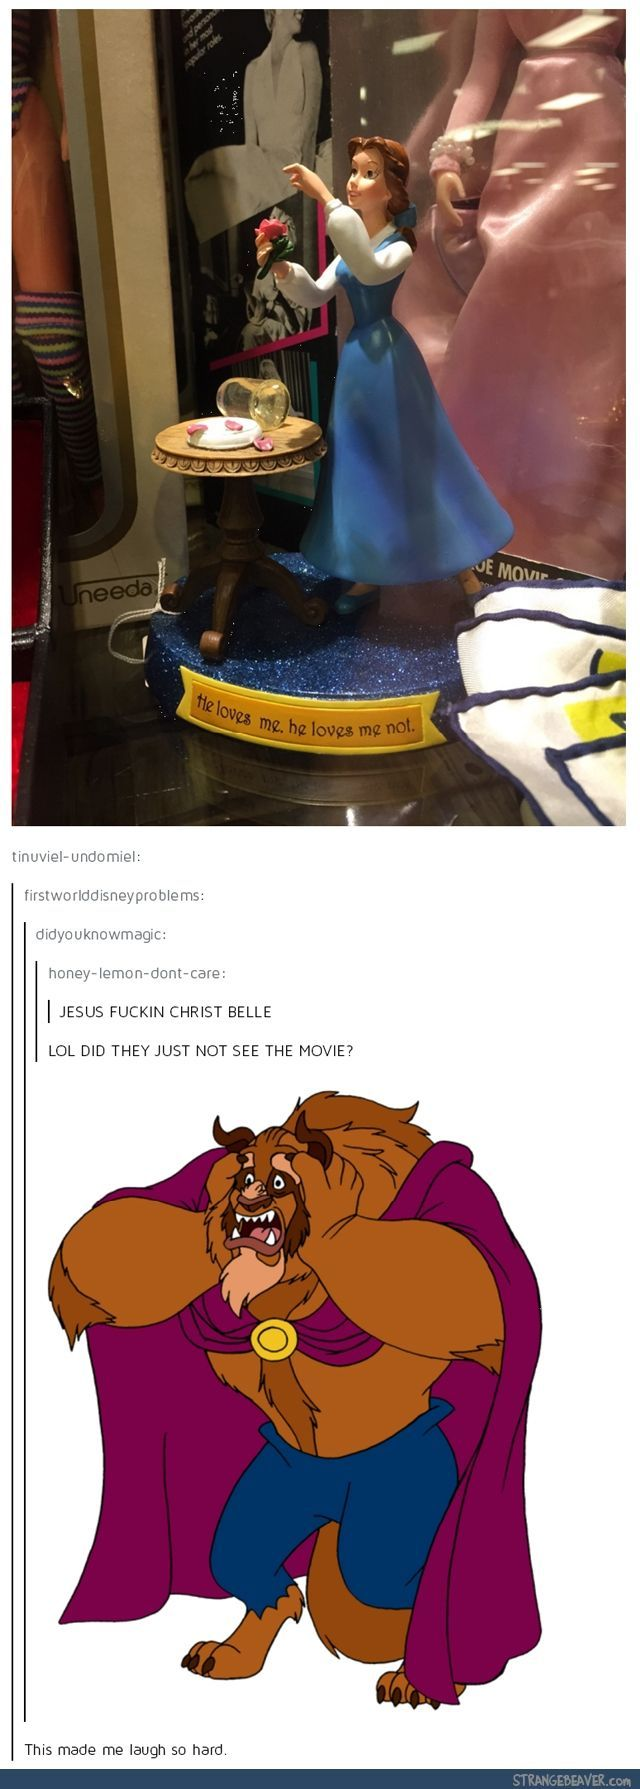 What are you doing Belle? - Funny tumblr post http://ibeebz.com